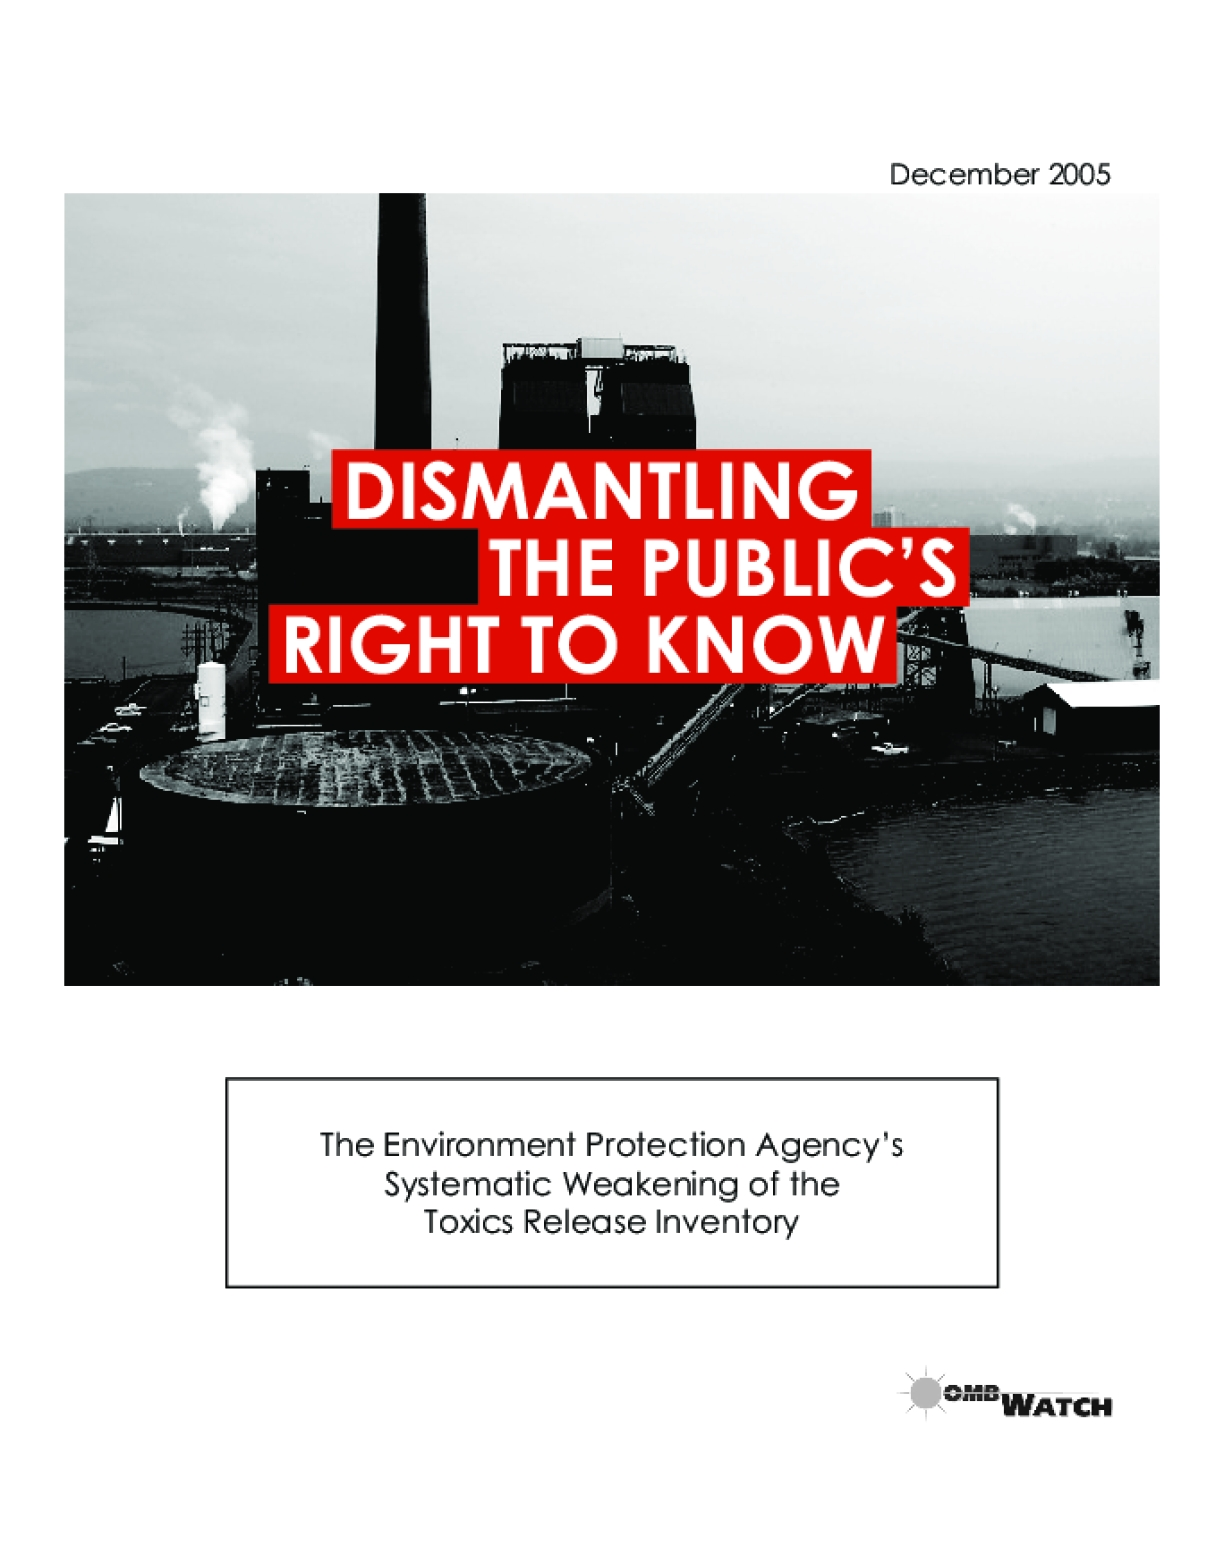 Dismantling the Public's Right to Know